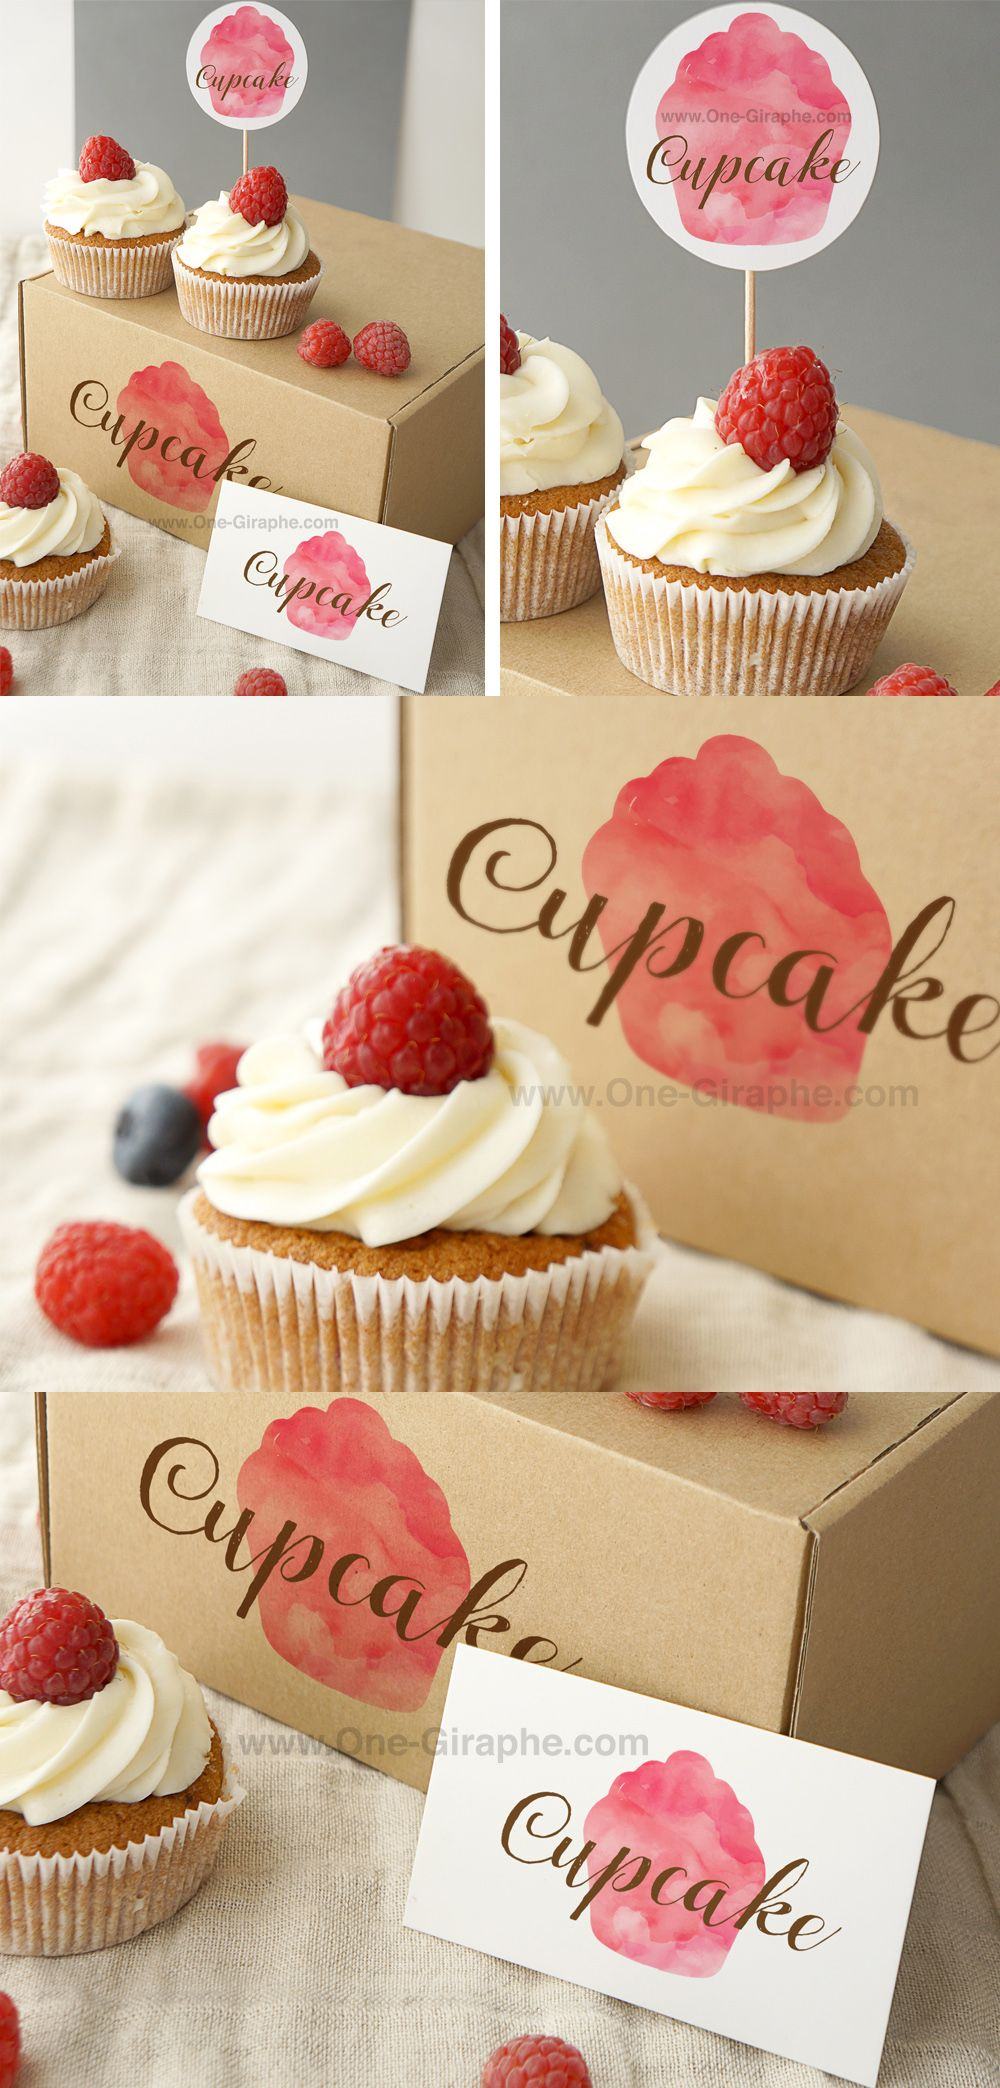 Cupcake logo for sale 199 Attention NonExclusive